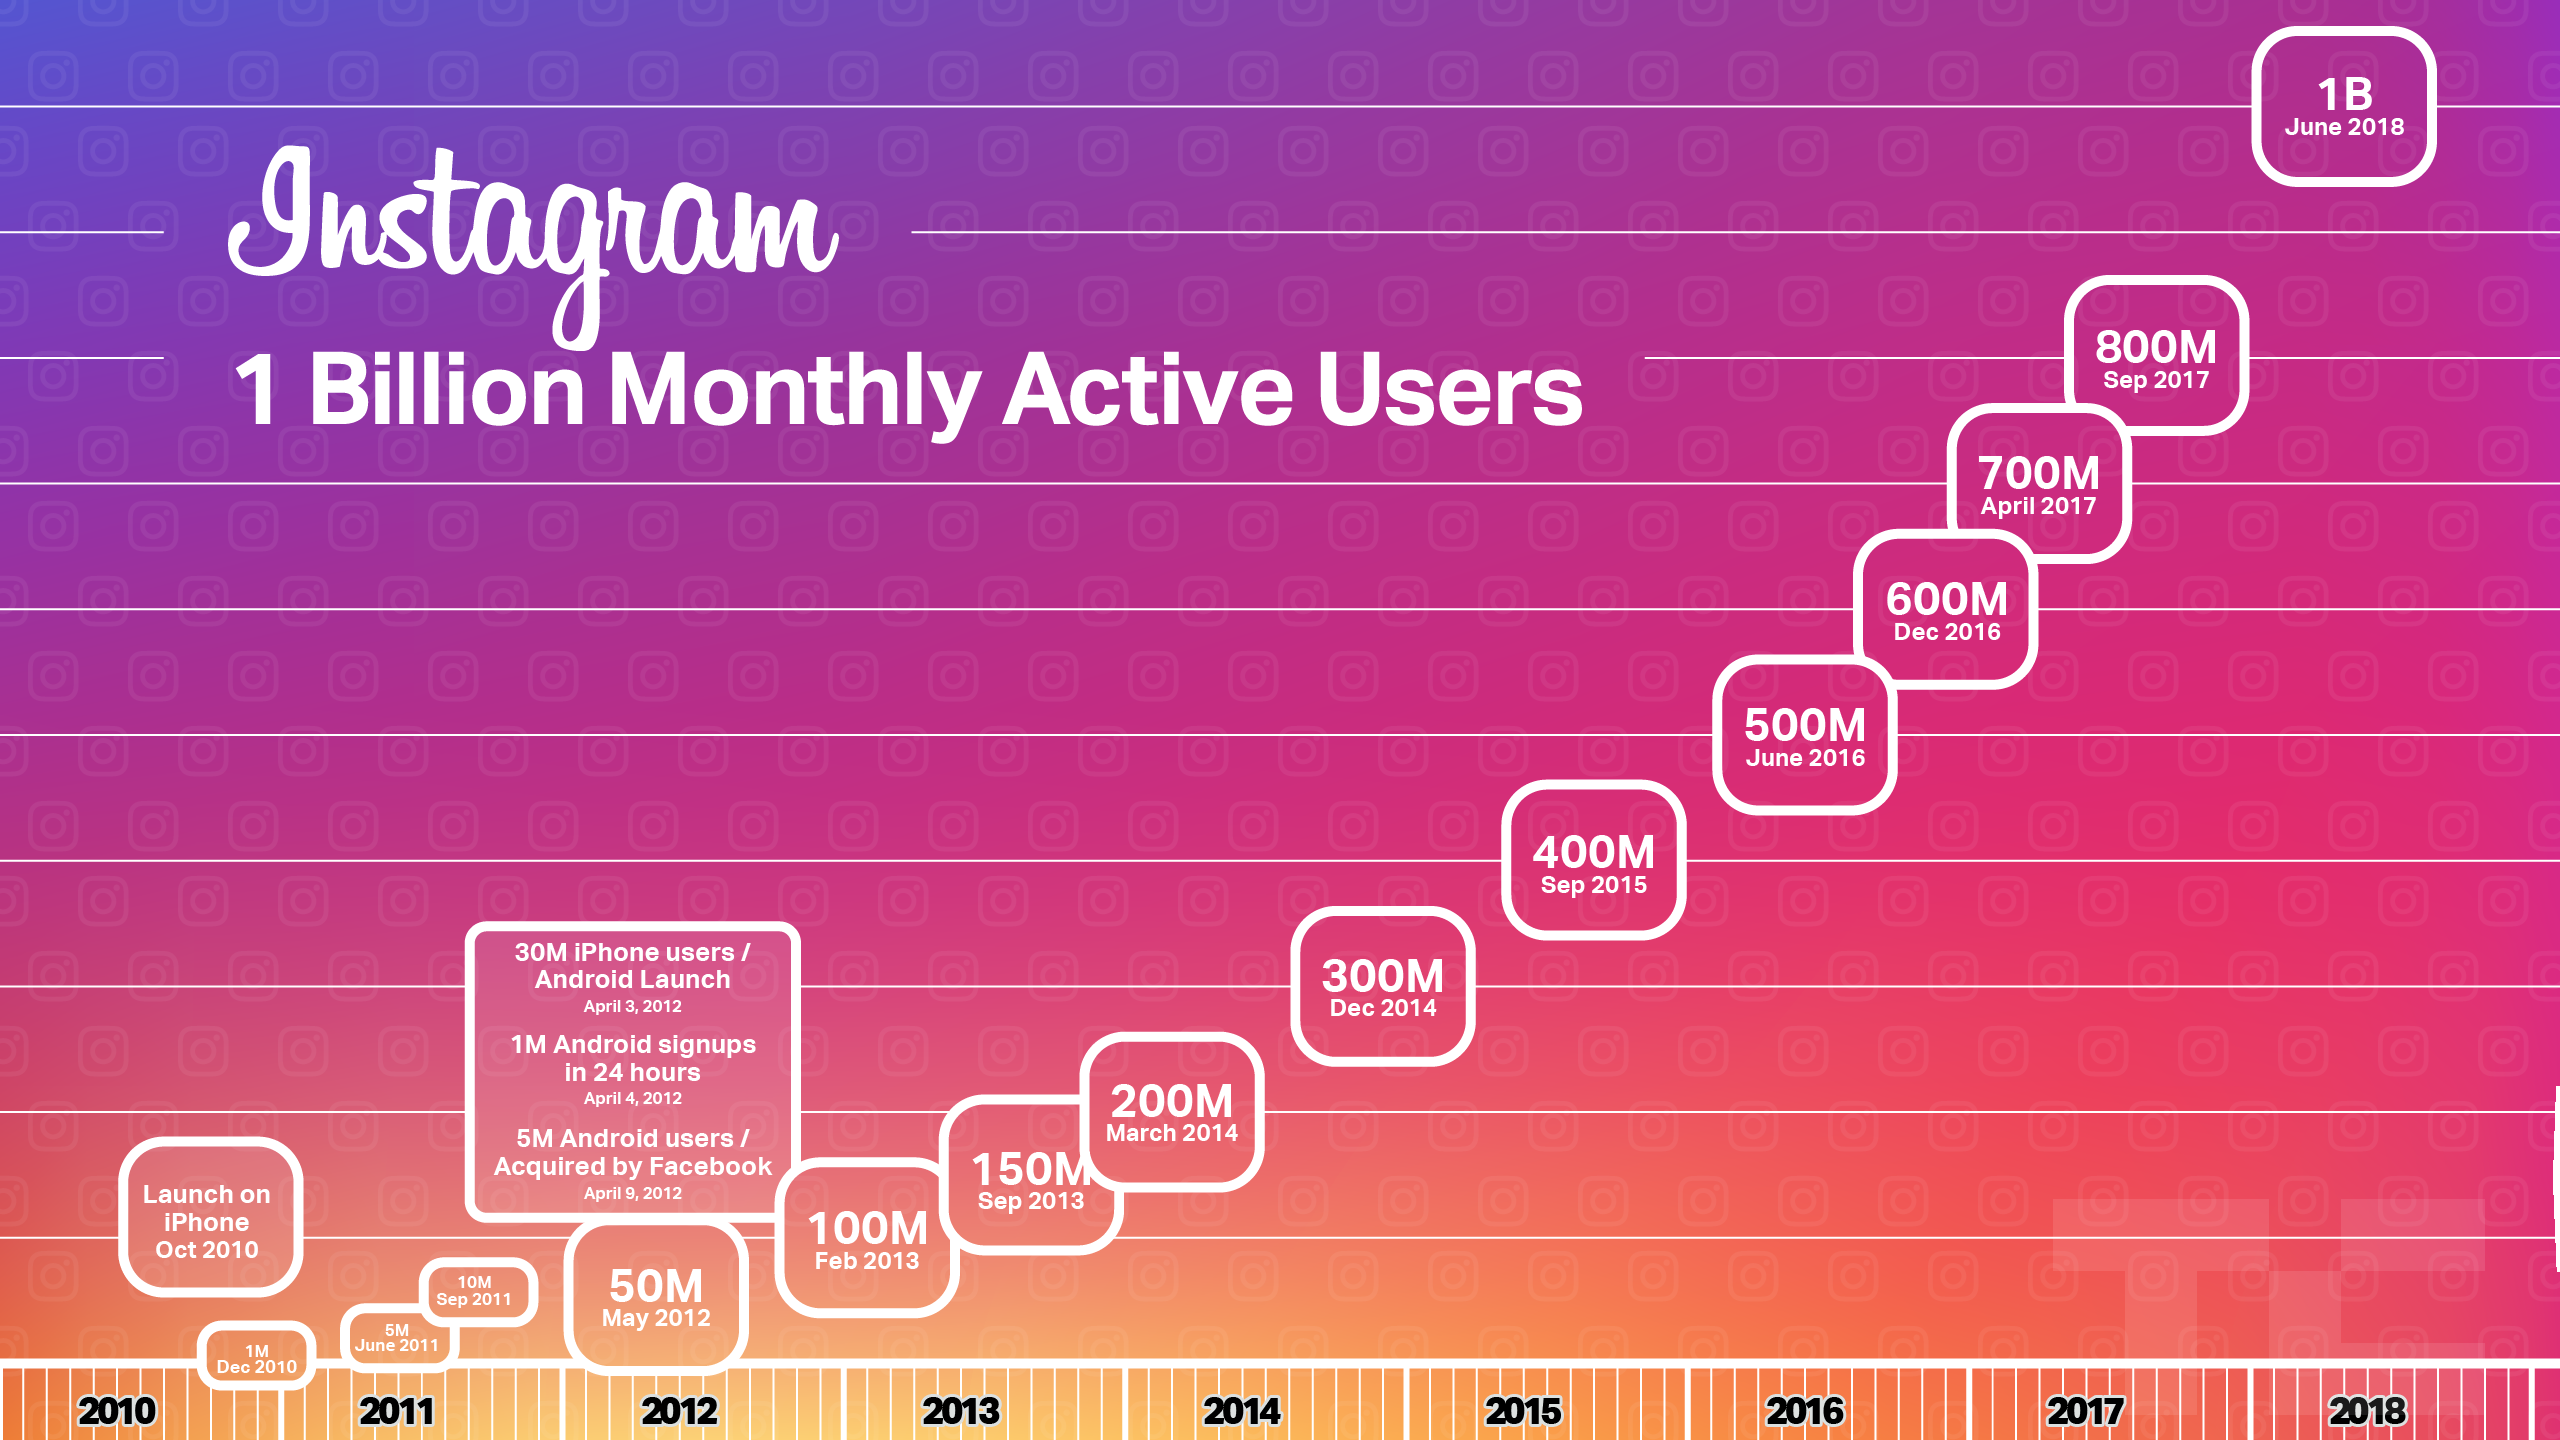 1 Billion Monthly Active Users